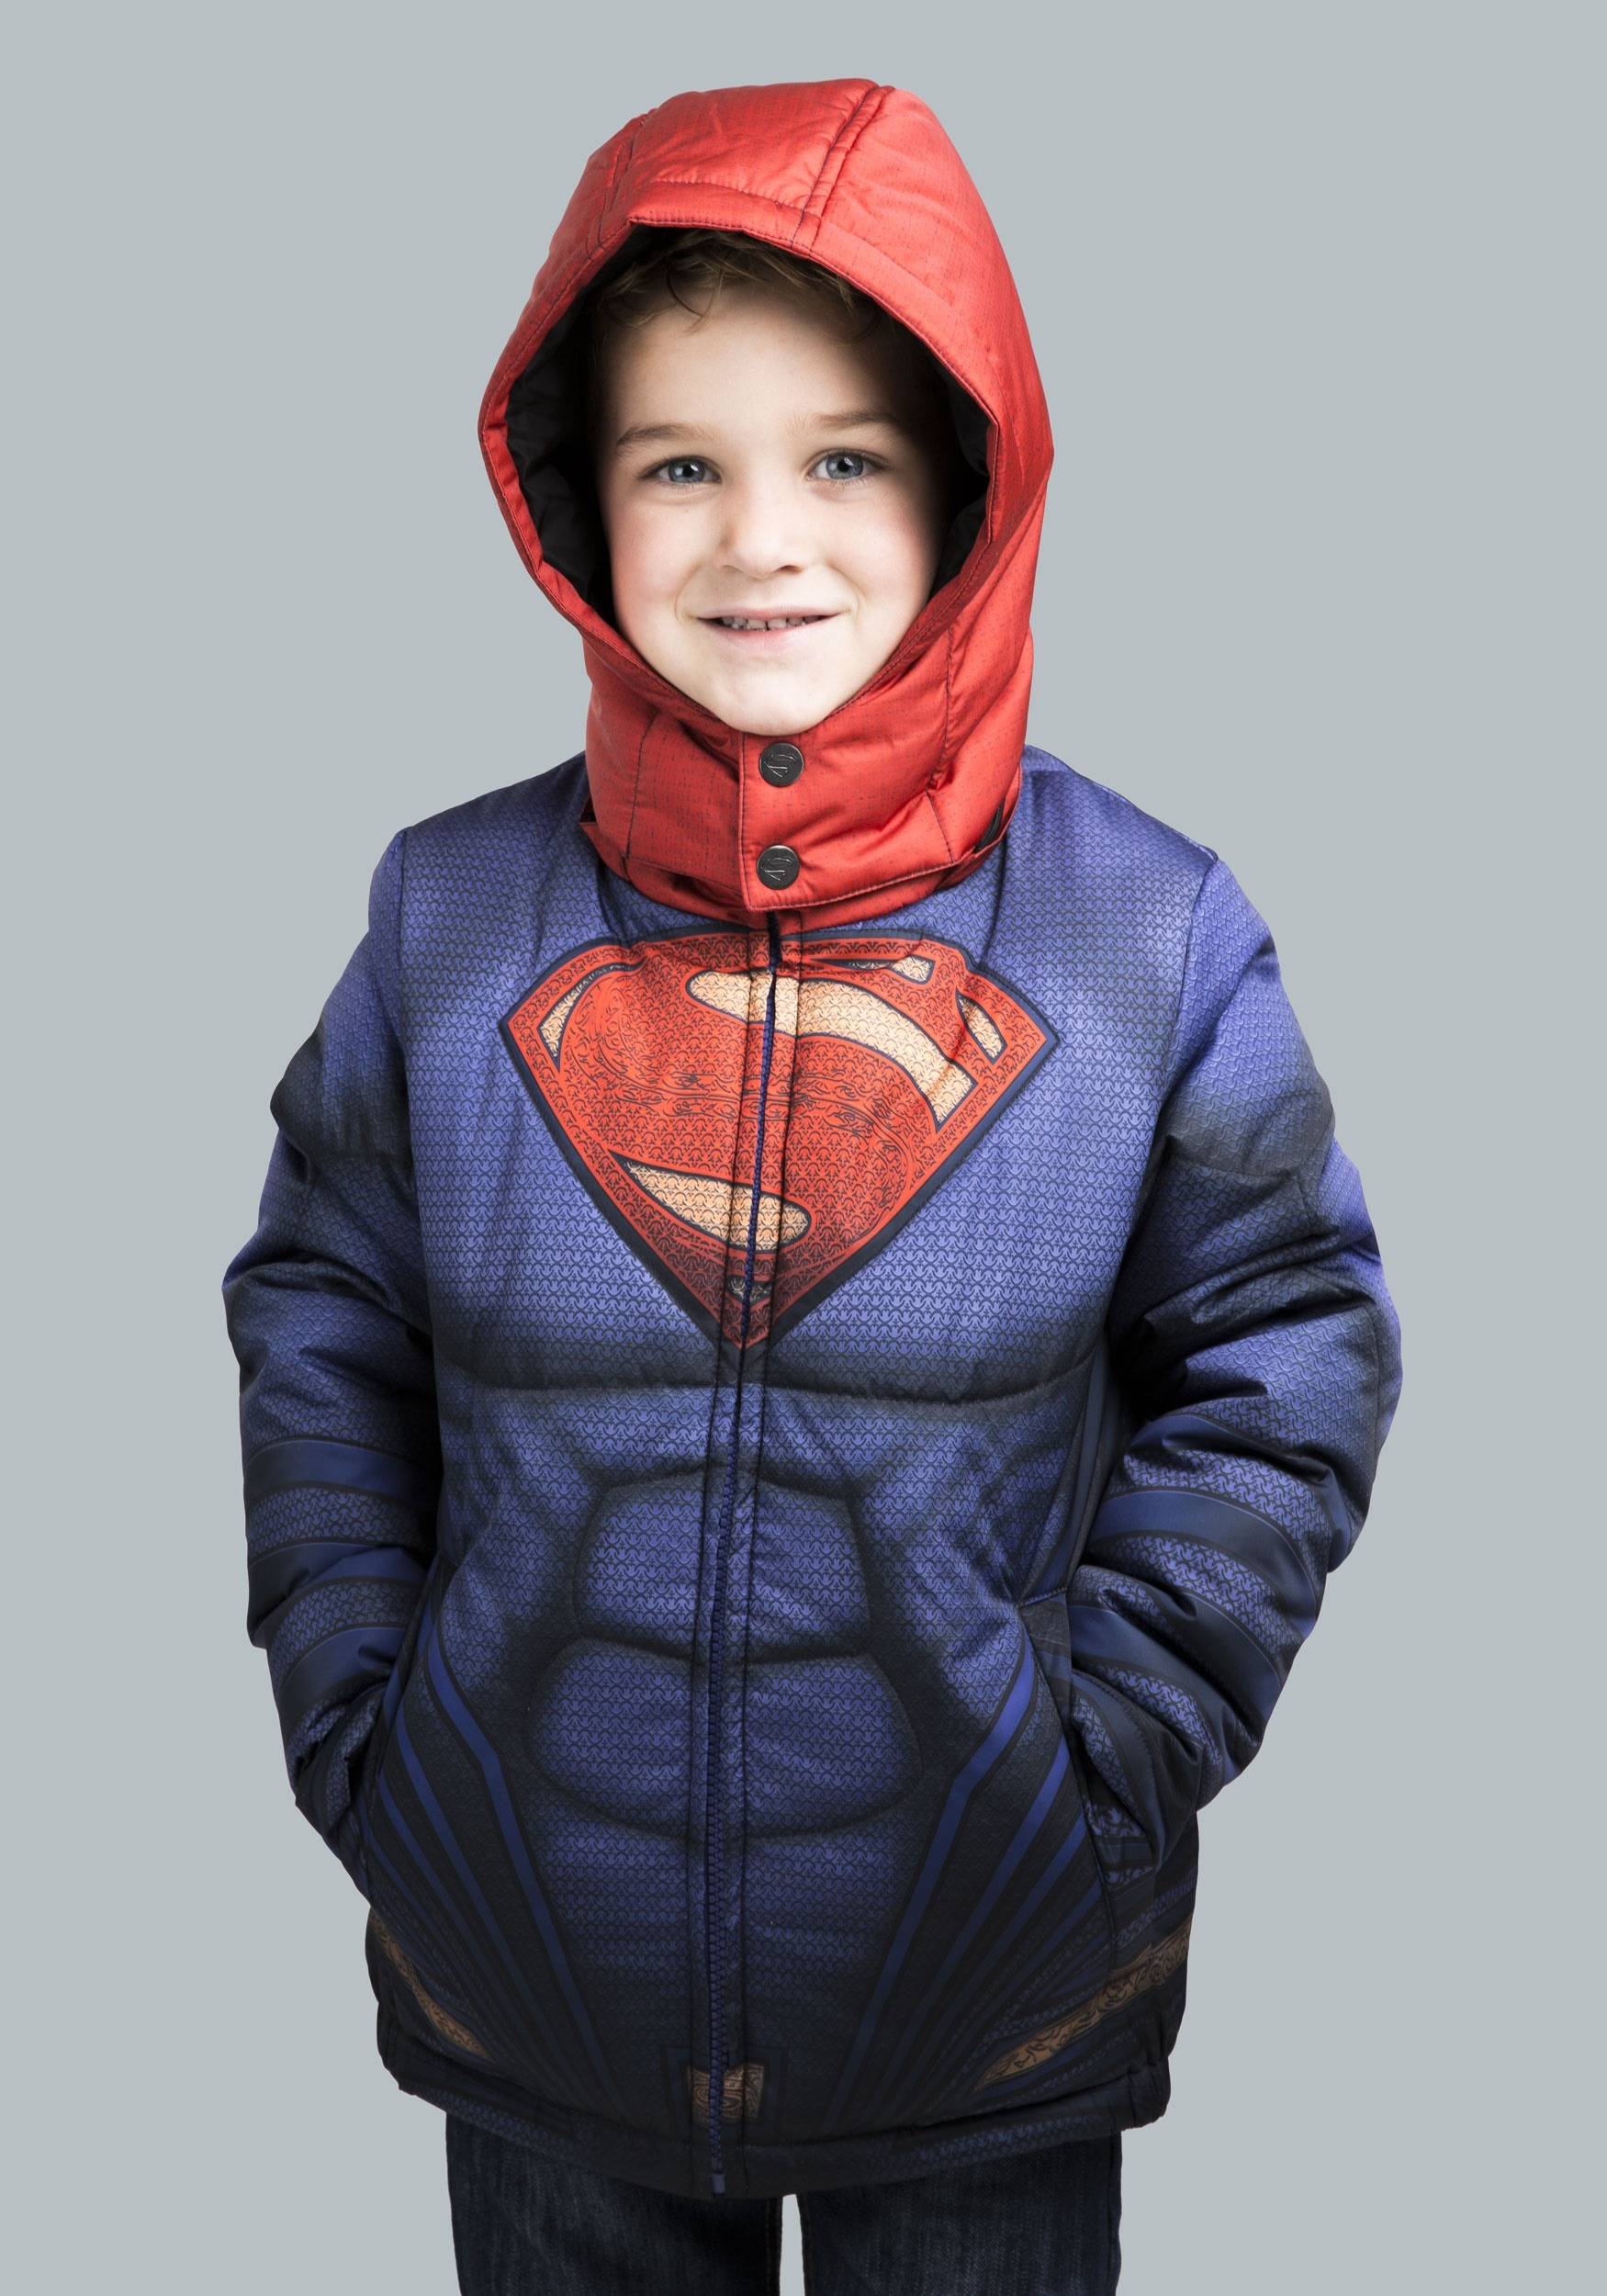 Oct 03, · Through October 8th, hop on over to Macy'failvideo.ml where they have TONS of Kids Puffer Jackets for Girls and Boys marked down to just $ (regularly up to $85)! Choose from brands like S. Rothschild, Weathertamer and more! Even sweeter, many of these jackets come with a beanie hat. Grab these jackets now and be ready for those cold winter mornings that are on the way!